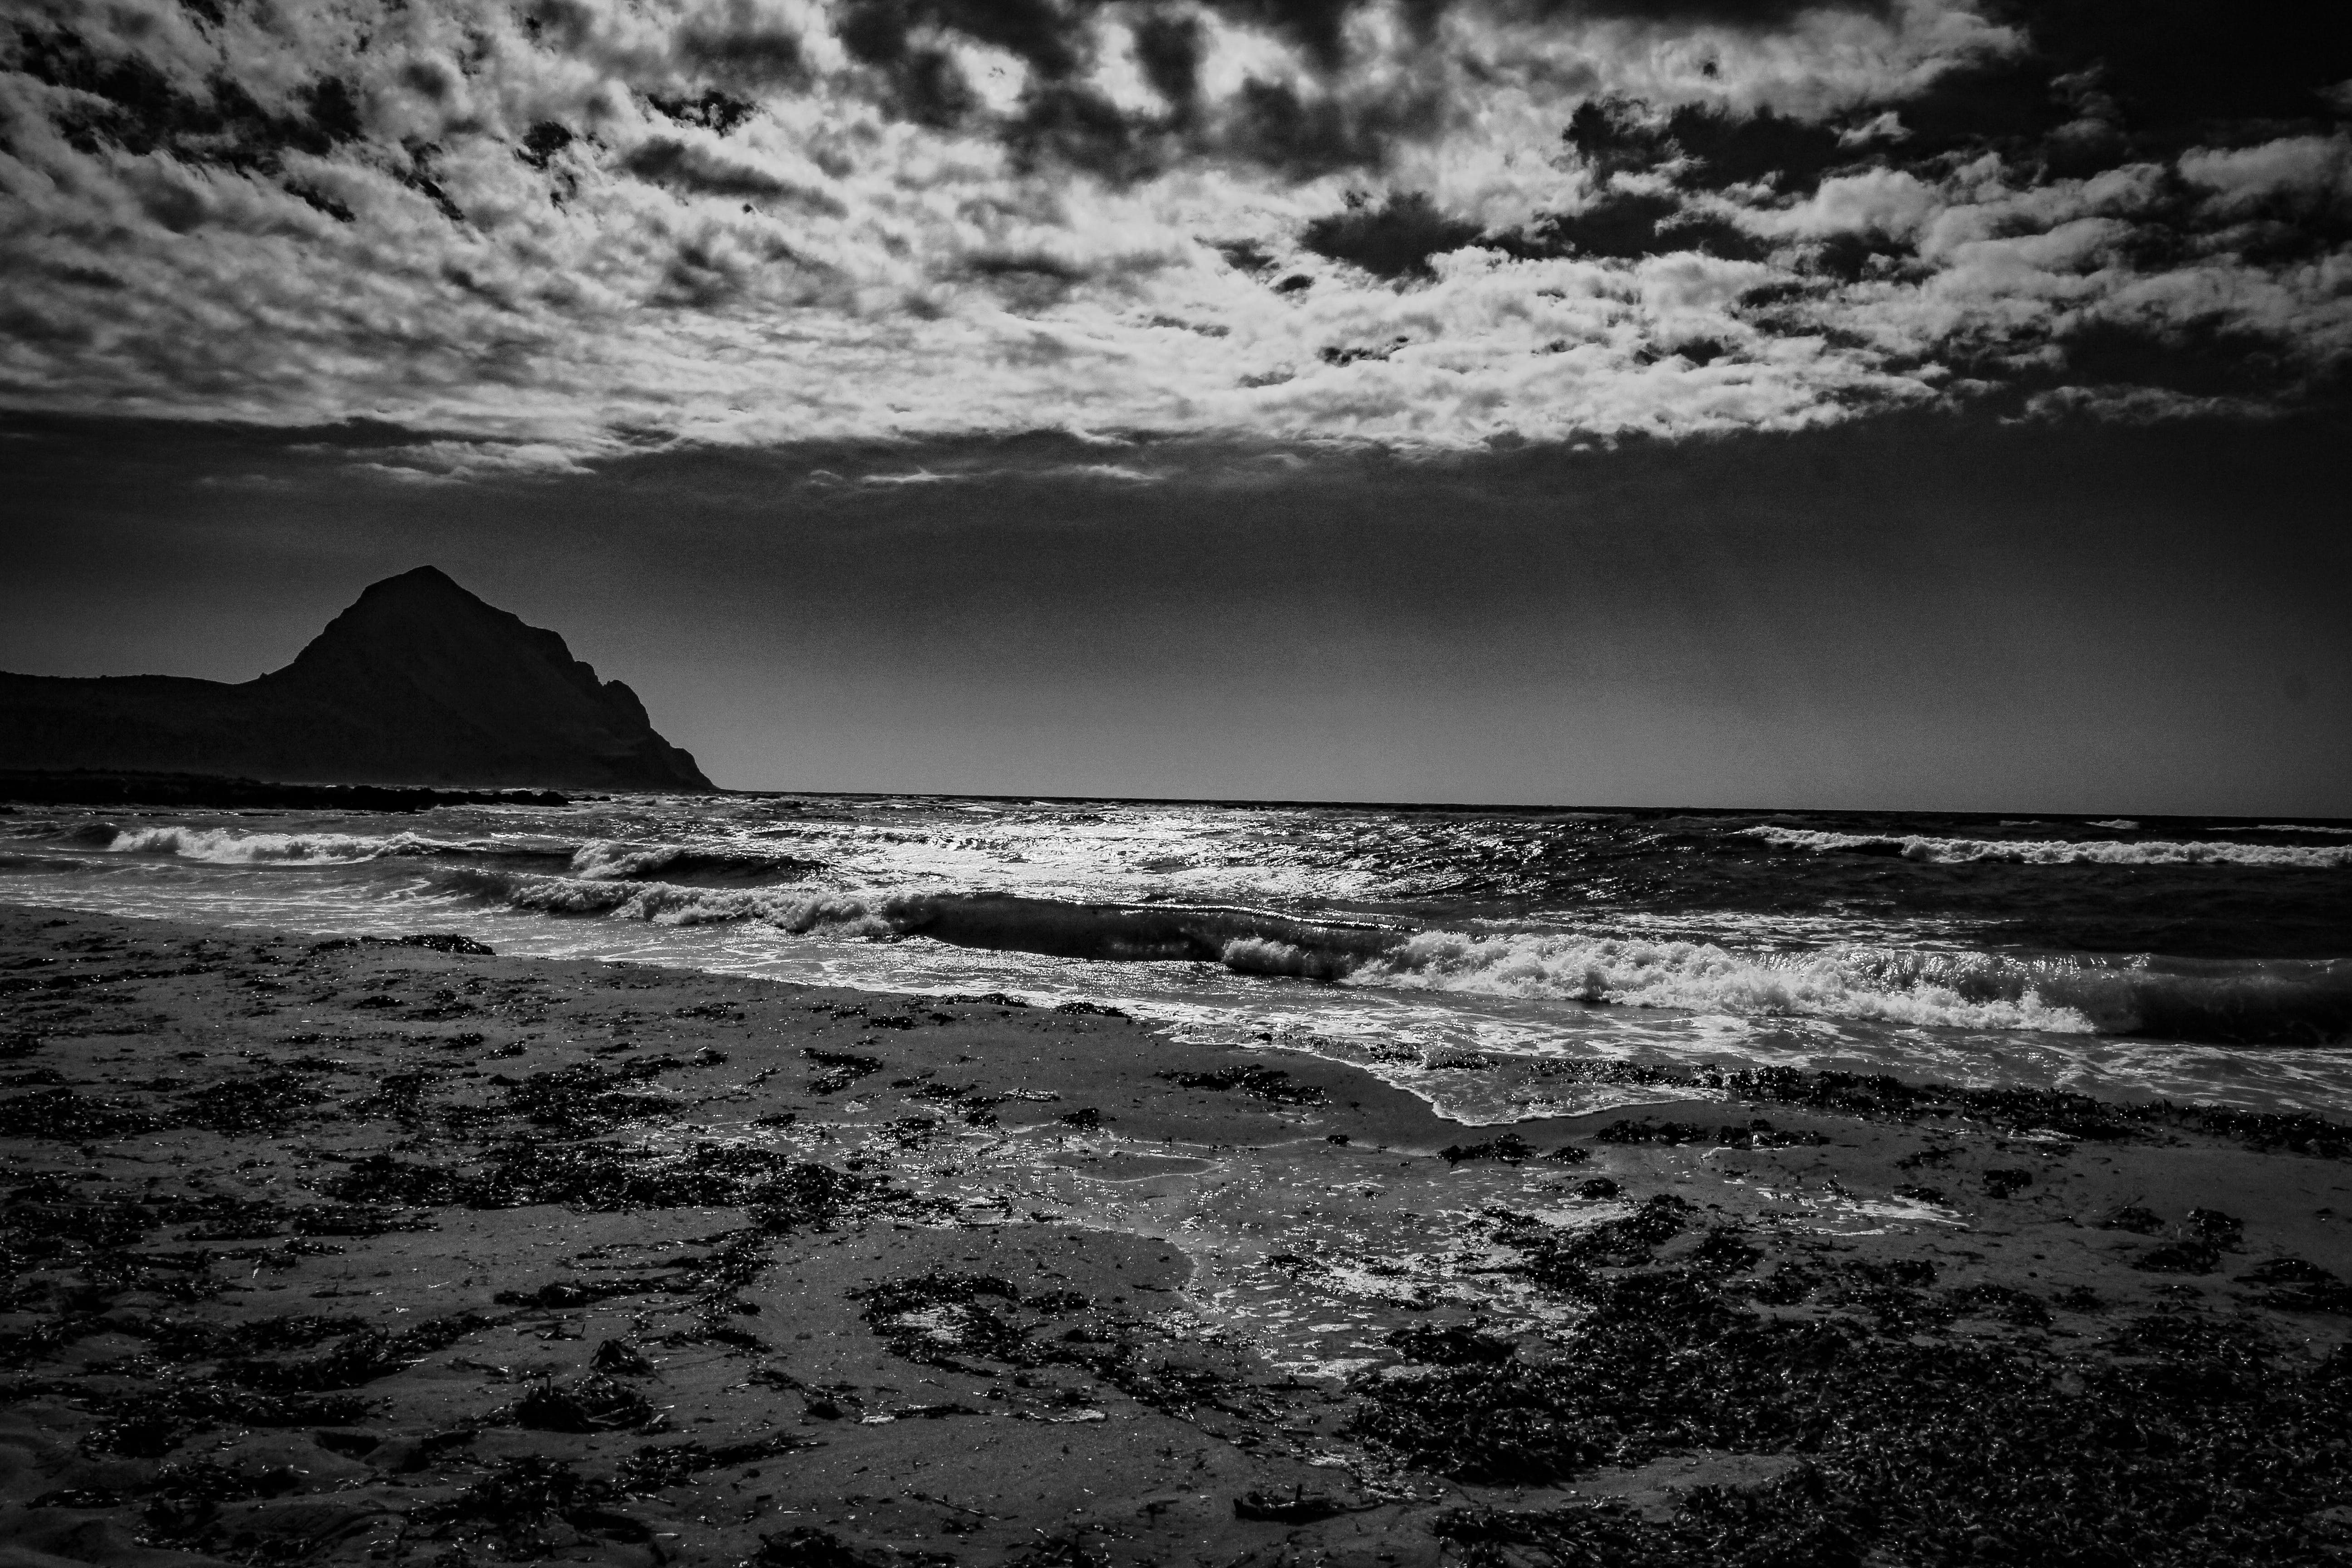 Grayscale Photography of Beach